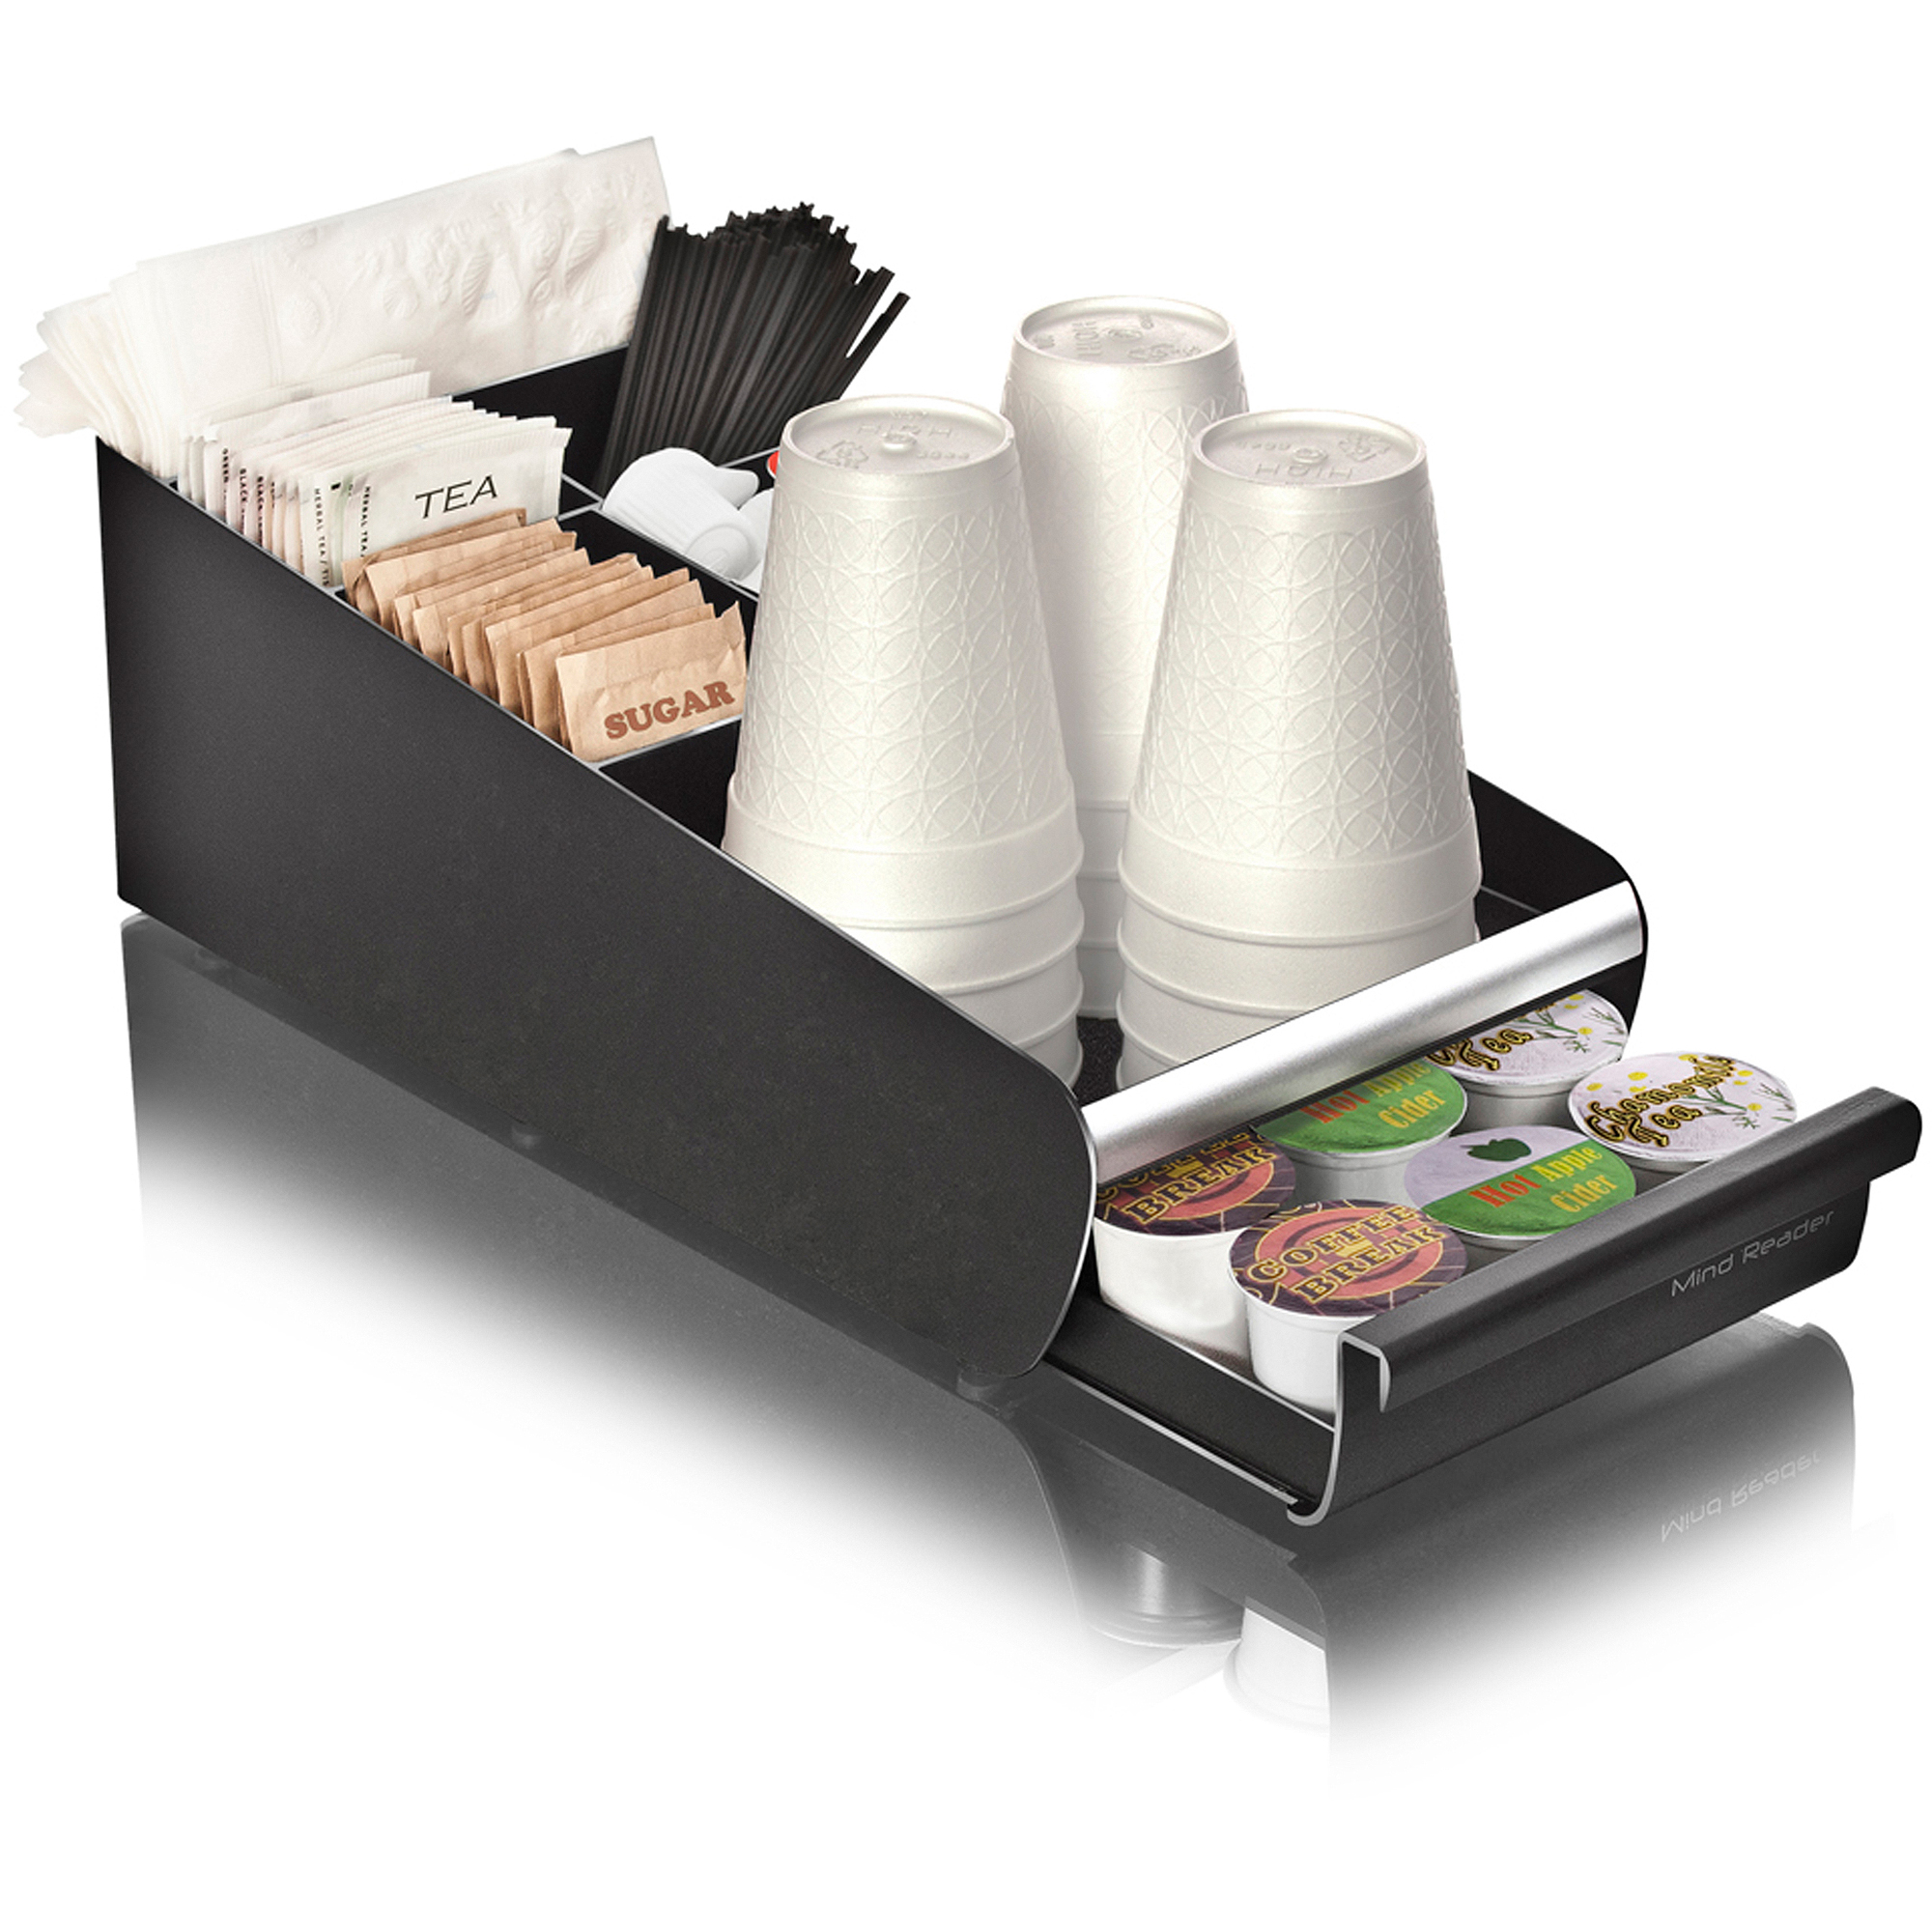 Mind Reader Coffee Condiment Organizer with K-Cup Drawer